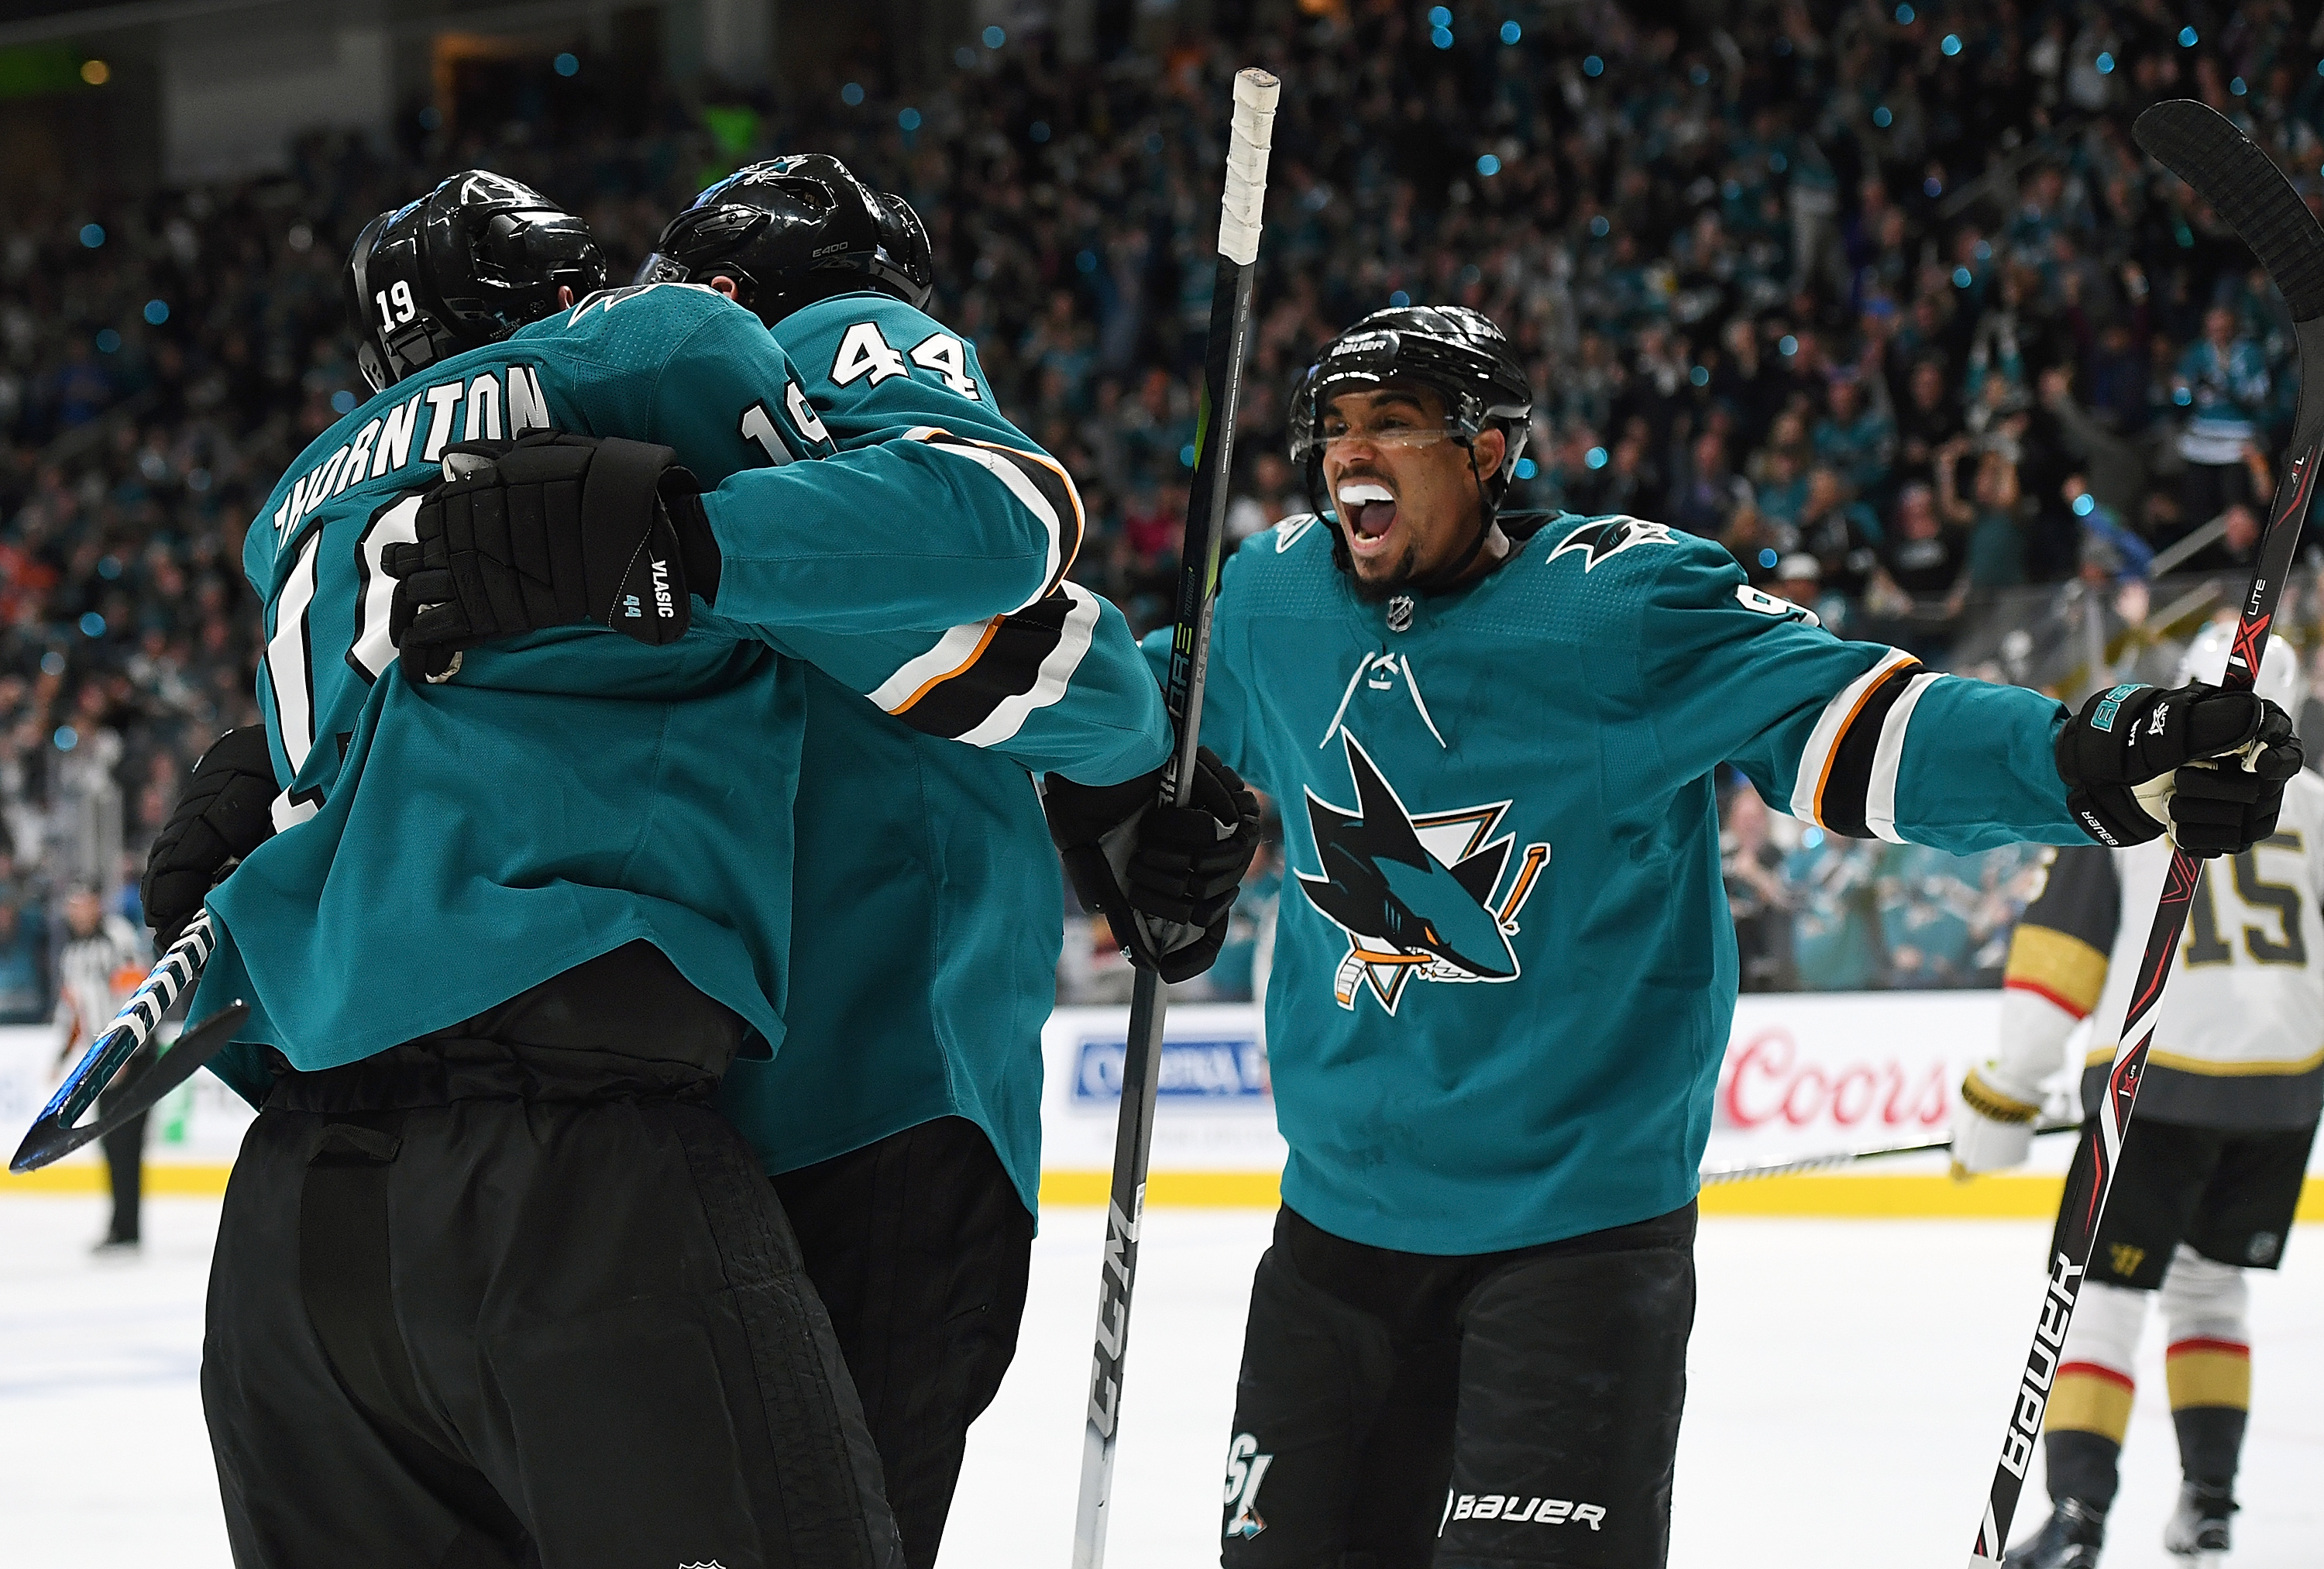 SAN JOSE, CA - APRIL 10: Marc-Edouard Vlasic #44, Joe Thornton #19 of and Evander Kane #9 the San Jose Sharks celebrates after Vlasic scored a goal against the Vegas Golden Knights during the second period in Game One of the Western Conference First Round during the 2019 NHL Stanley Cup Playoffs at SAP Center on April 10, 2019 in San Jose, California. (Photo by Thearon W. Henderson/Getty Images)